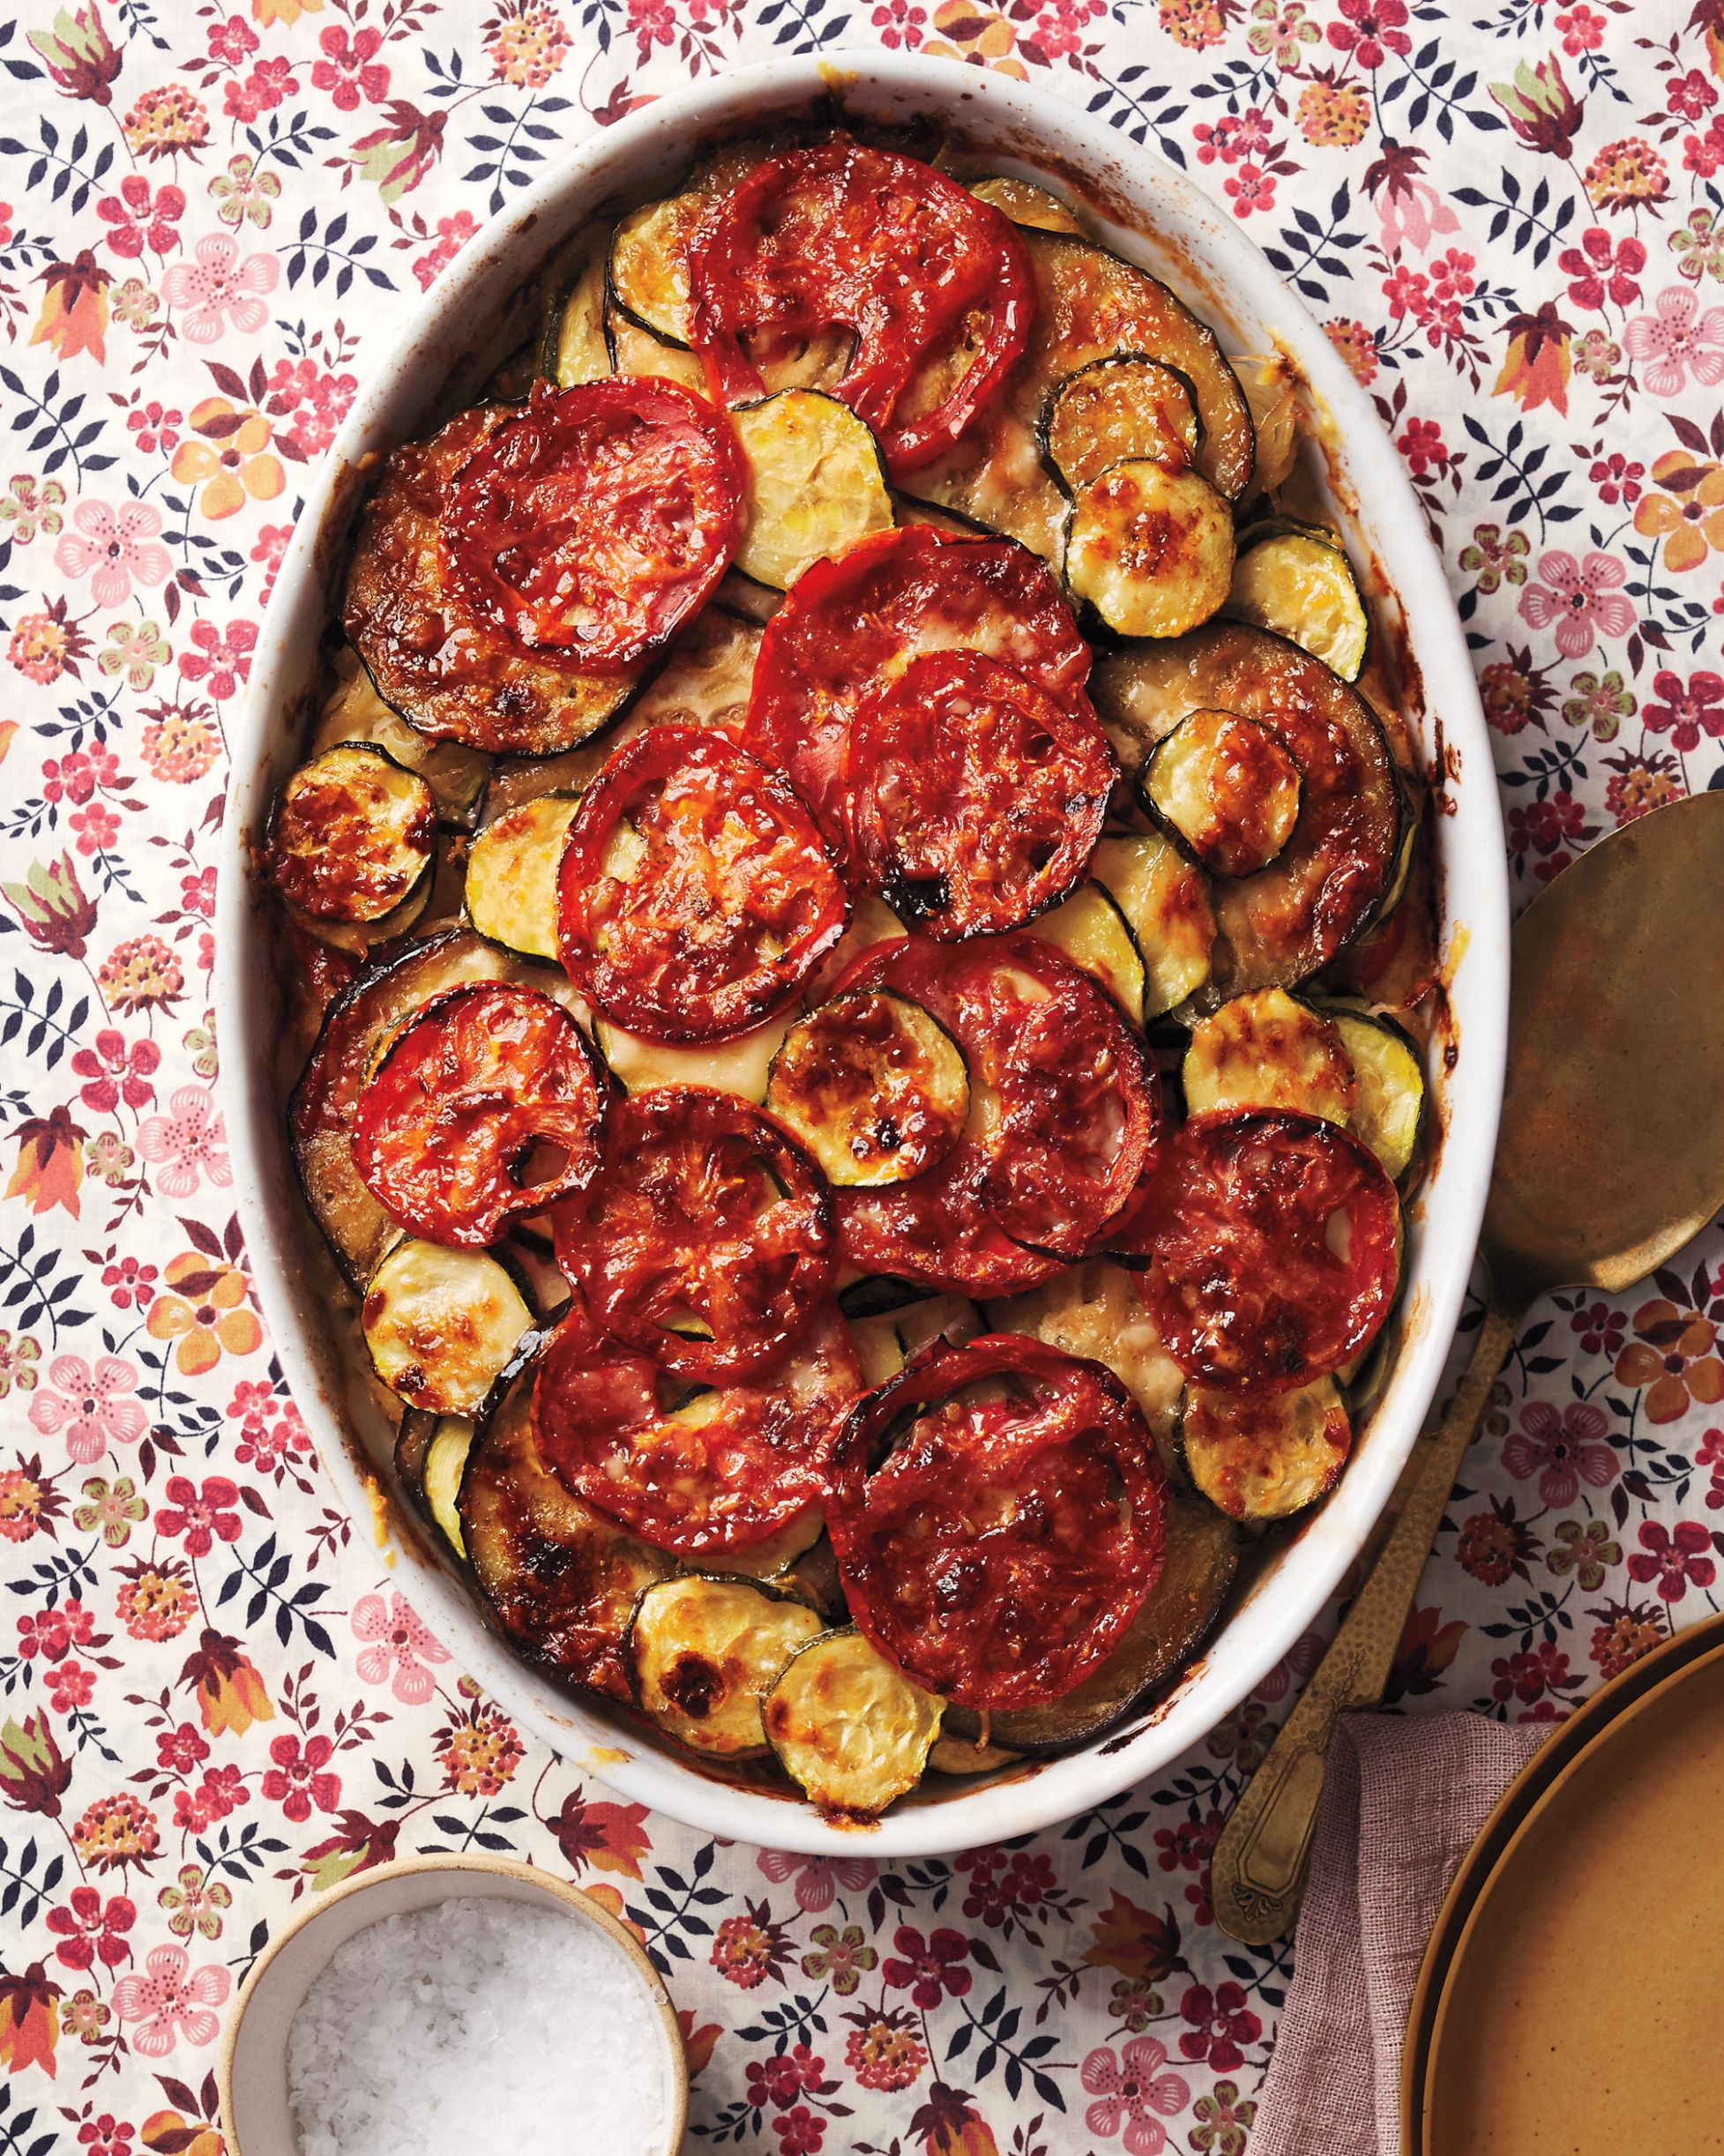 11 Vegetable Casserole Recipes That Are Guaranteed Crowd-Pleasers ..